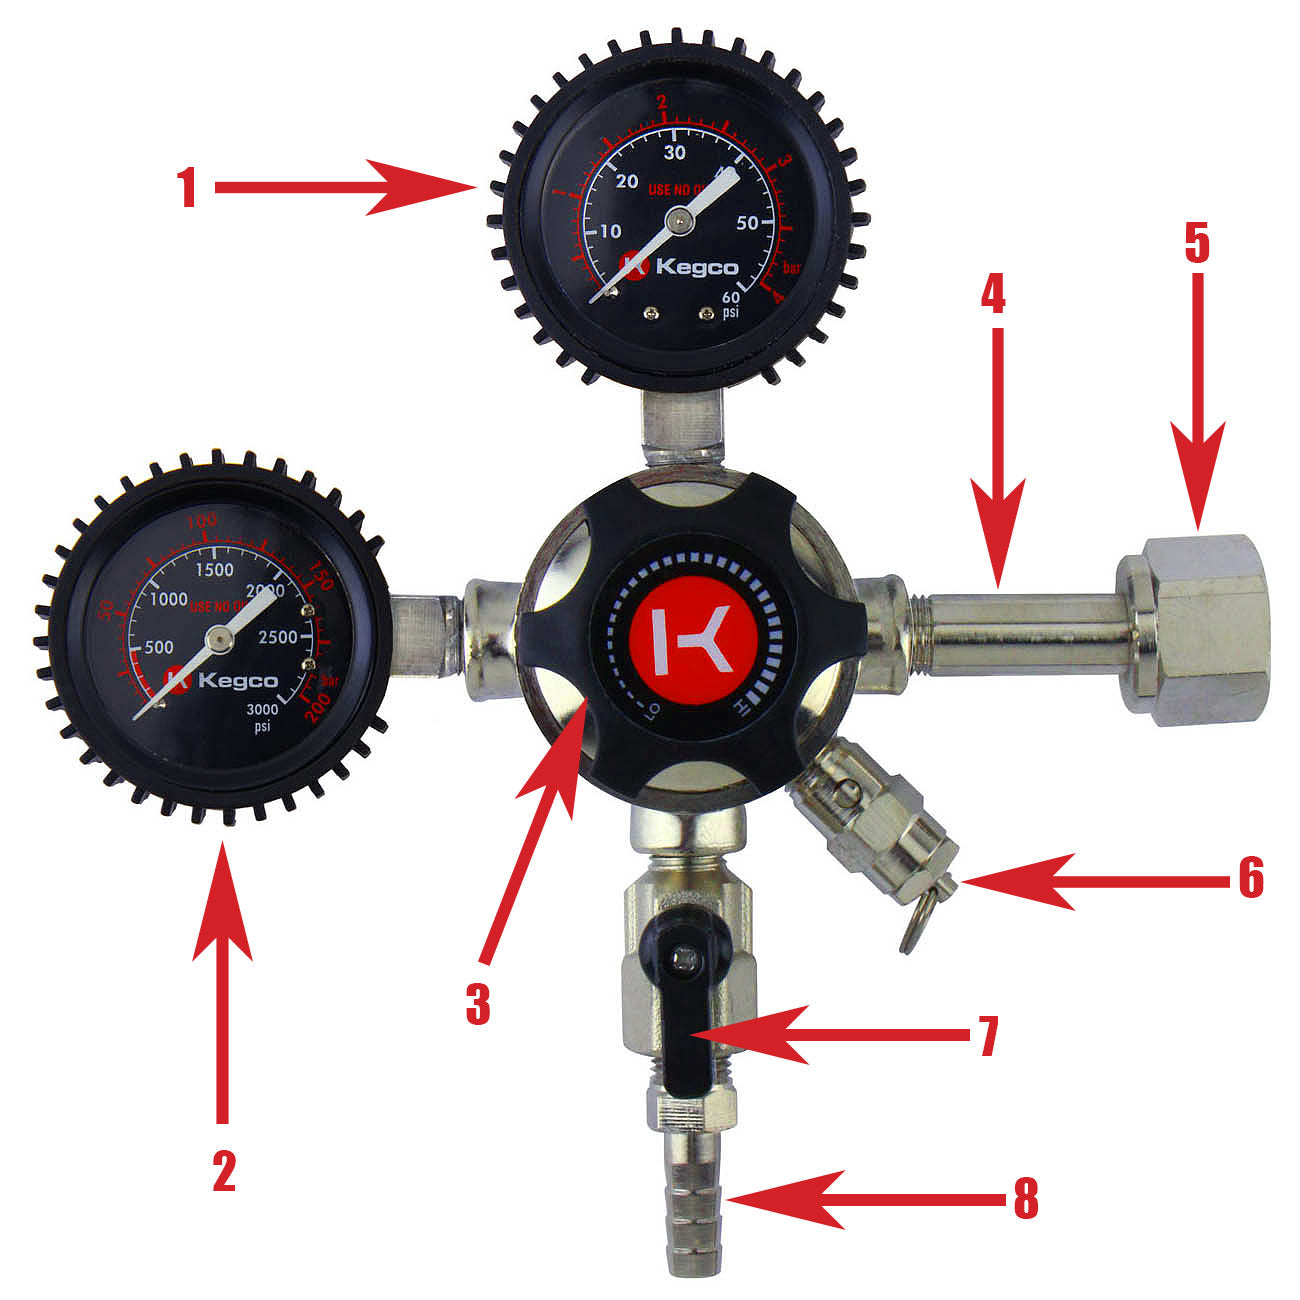 How does a regulator work